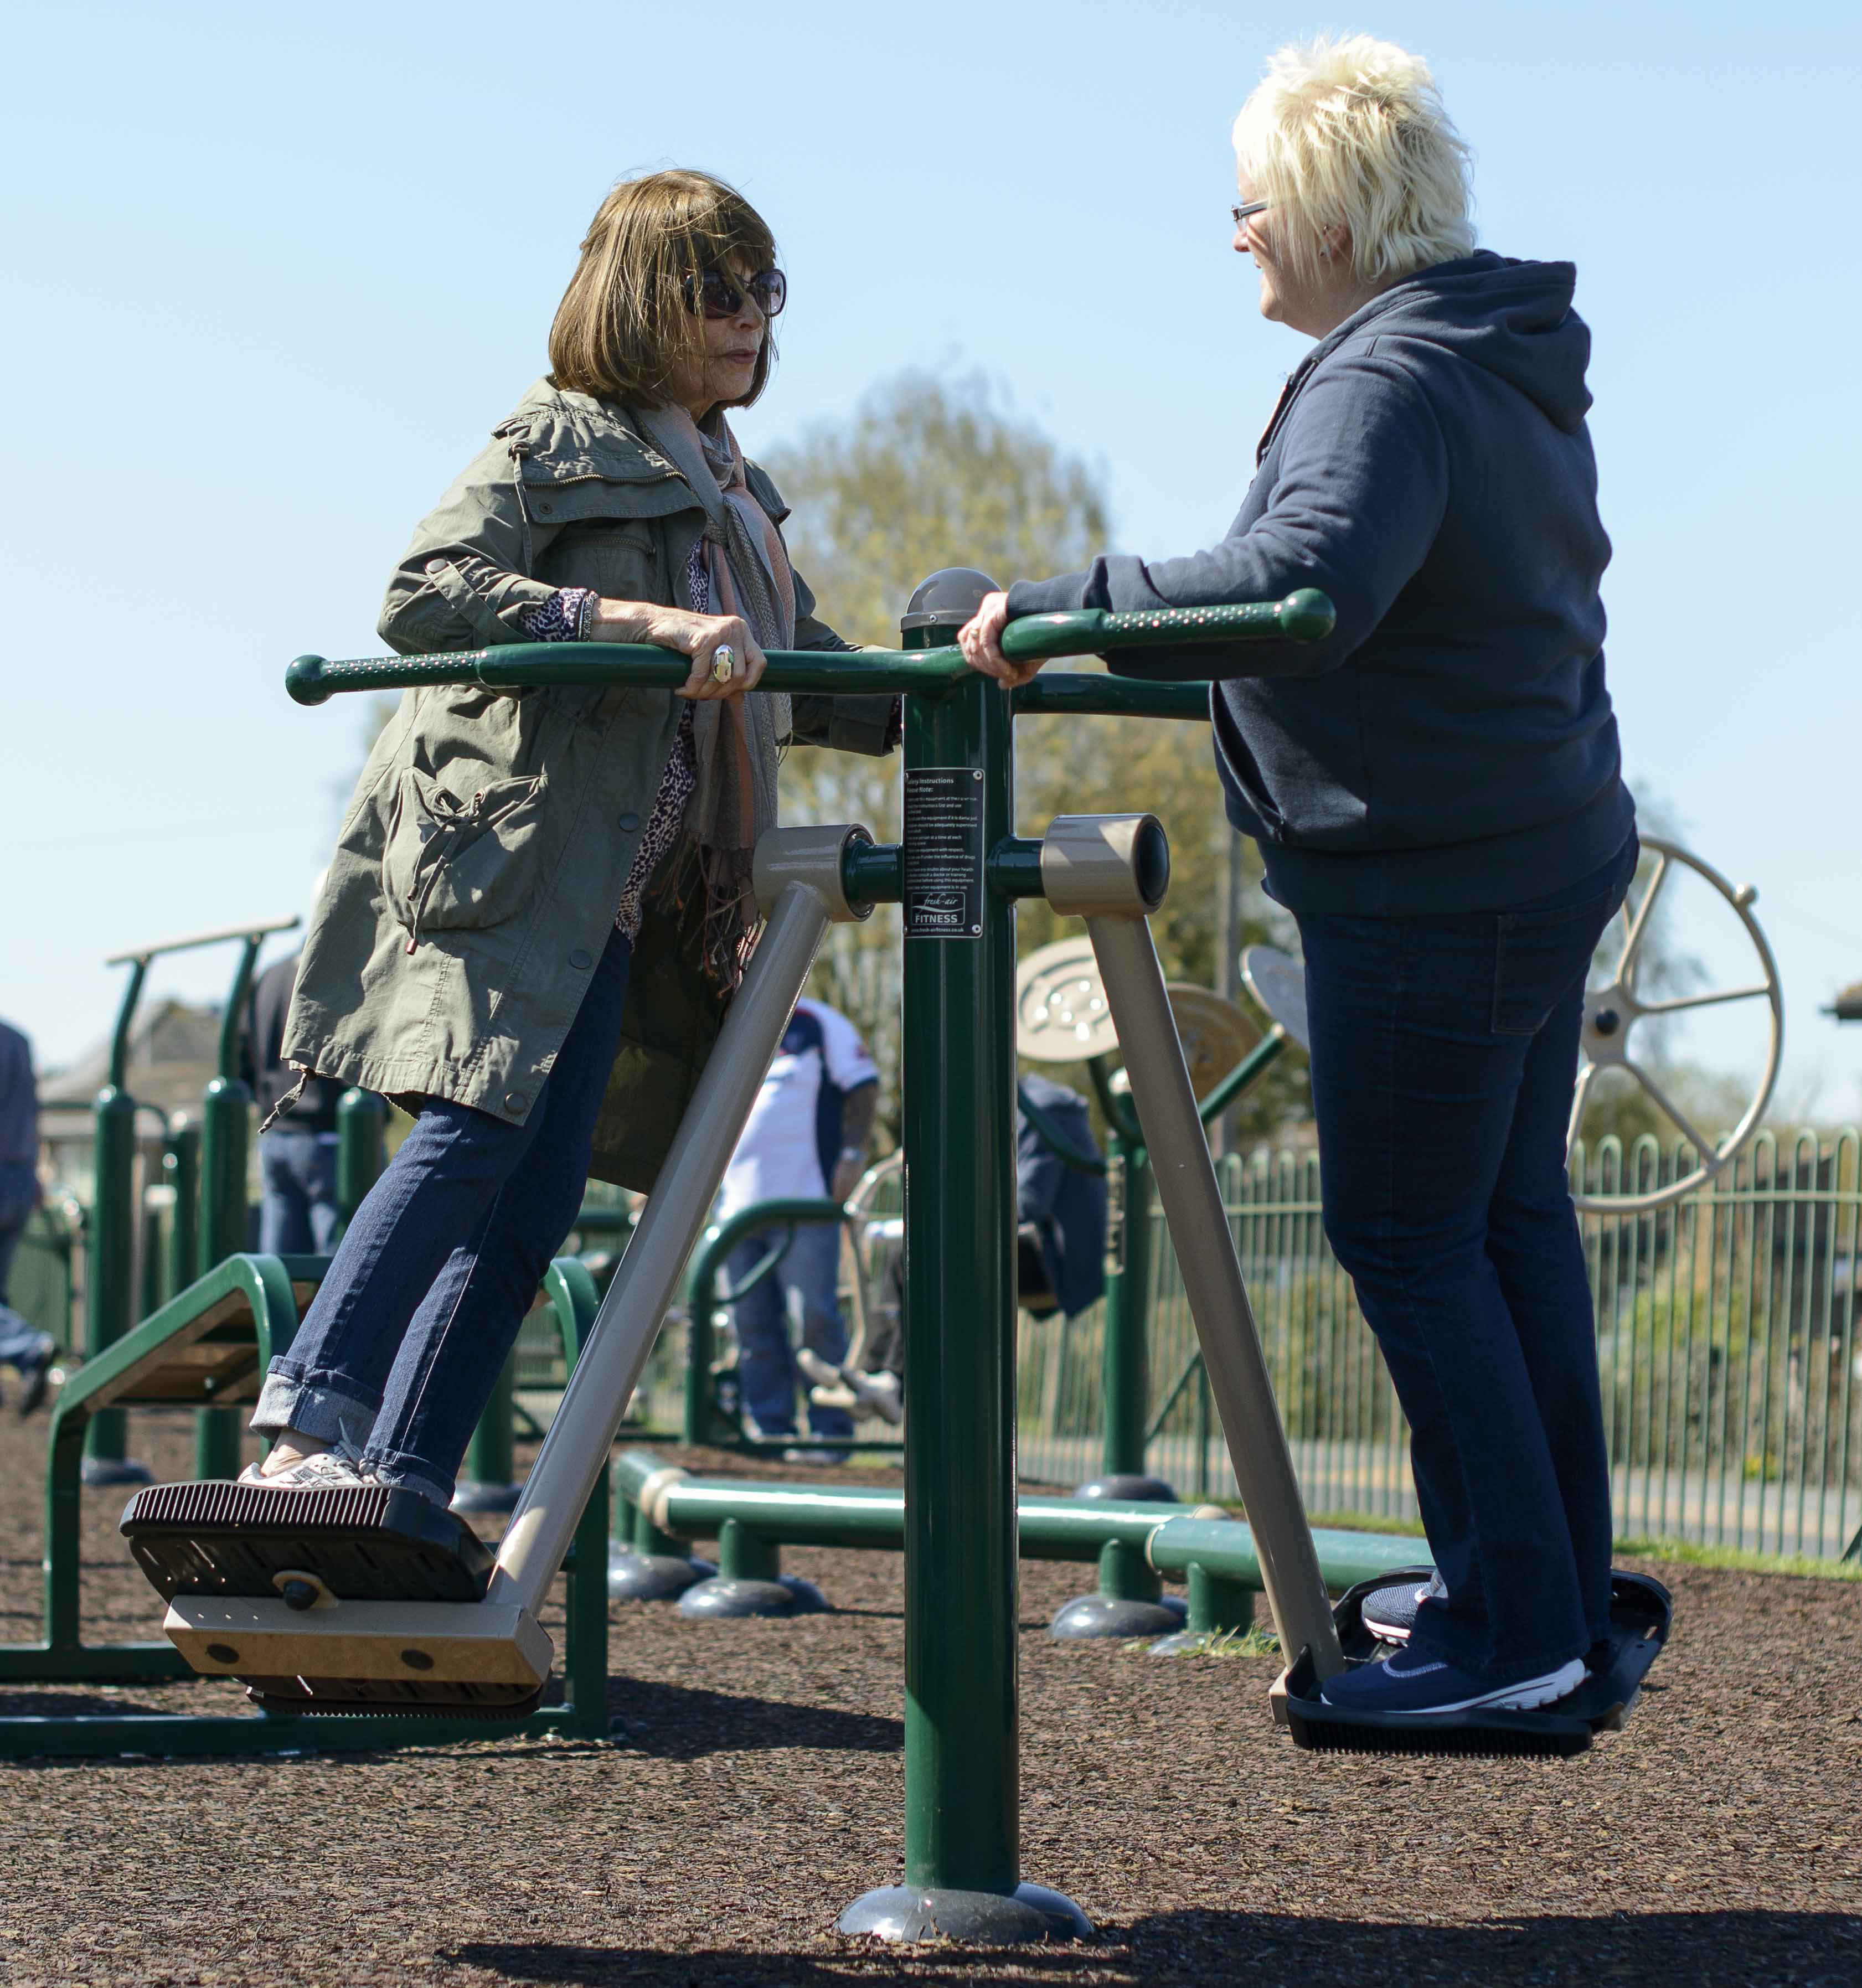 Women using outdoor gym specialists